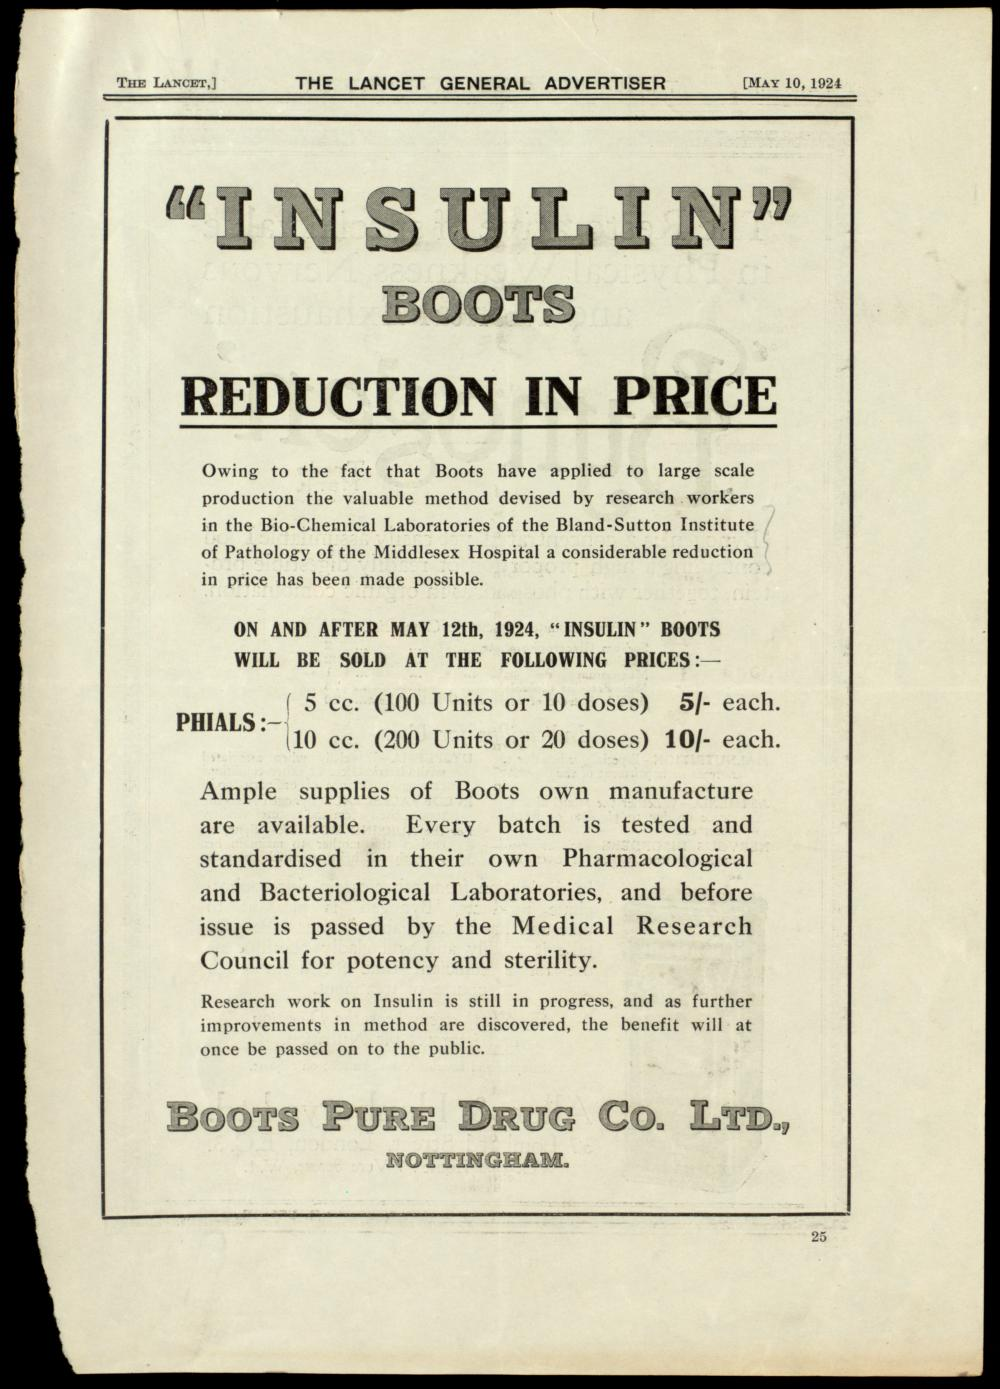 Advertisement from May 10, 1924, for Insulin Boots, produced by Boots Pure Drug Co. Ltd. of Nottingham, England, announcing the company's plans for price reductions.